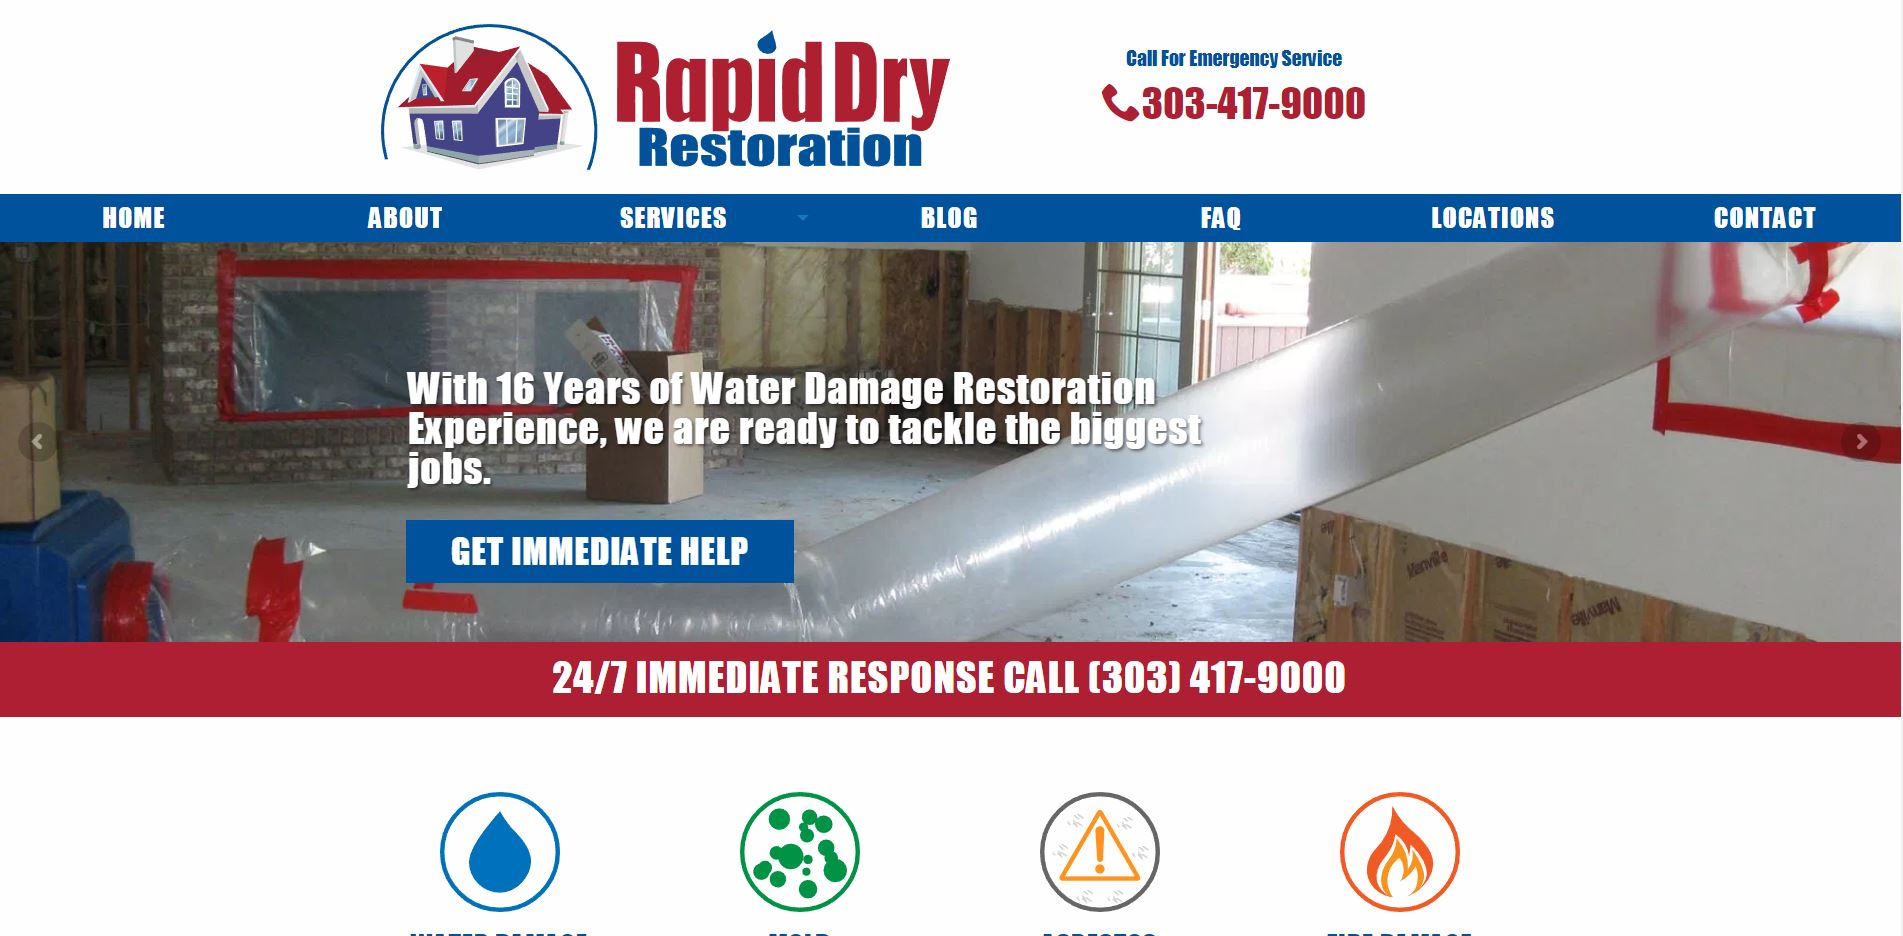 Screenshot of the Rapid Dry Restoration homepage.